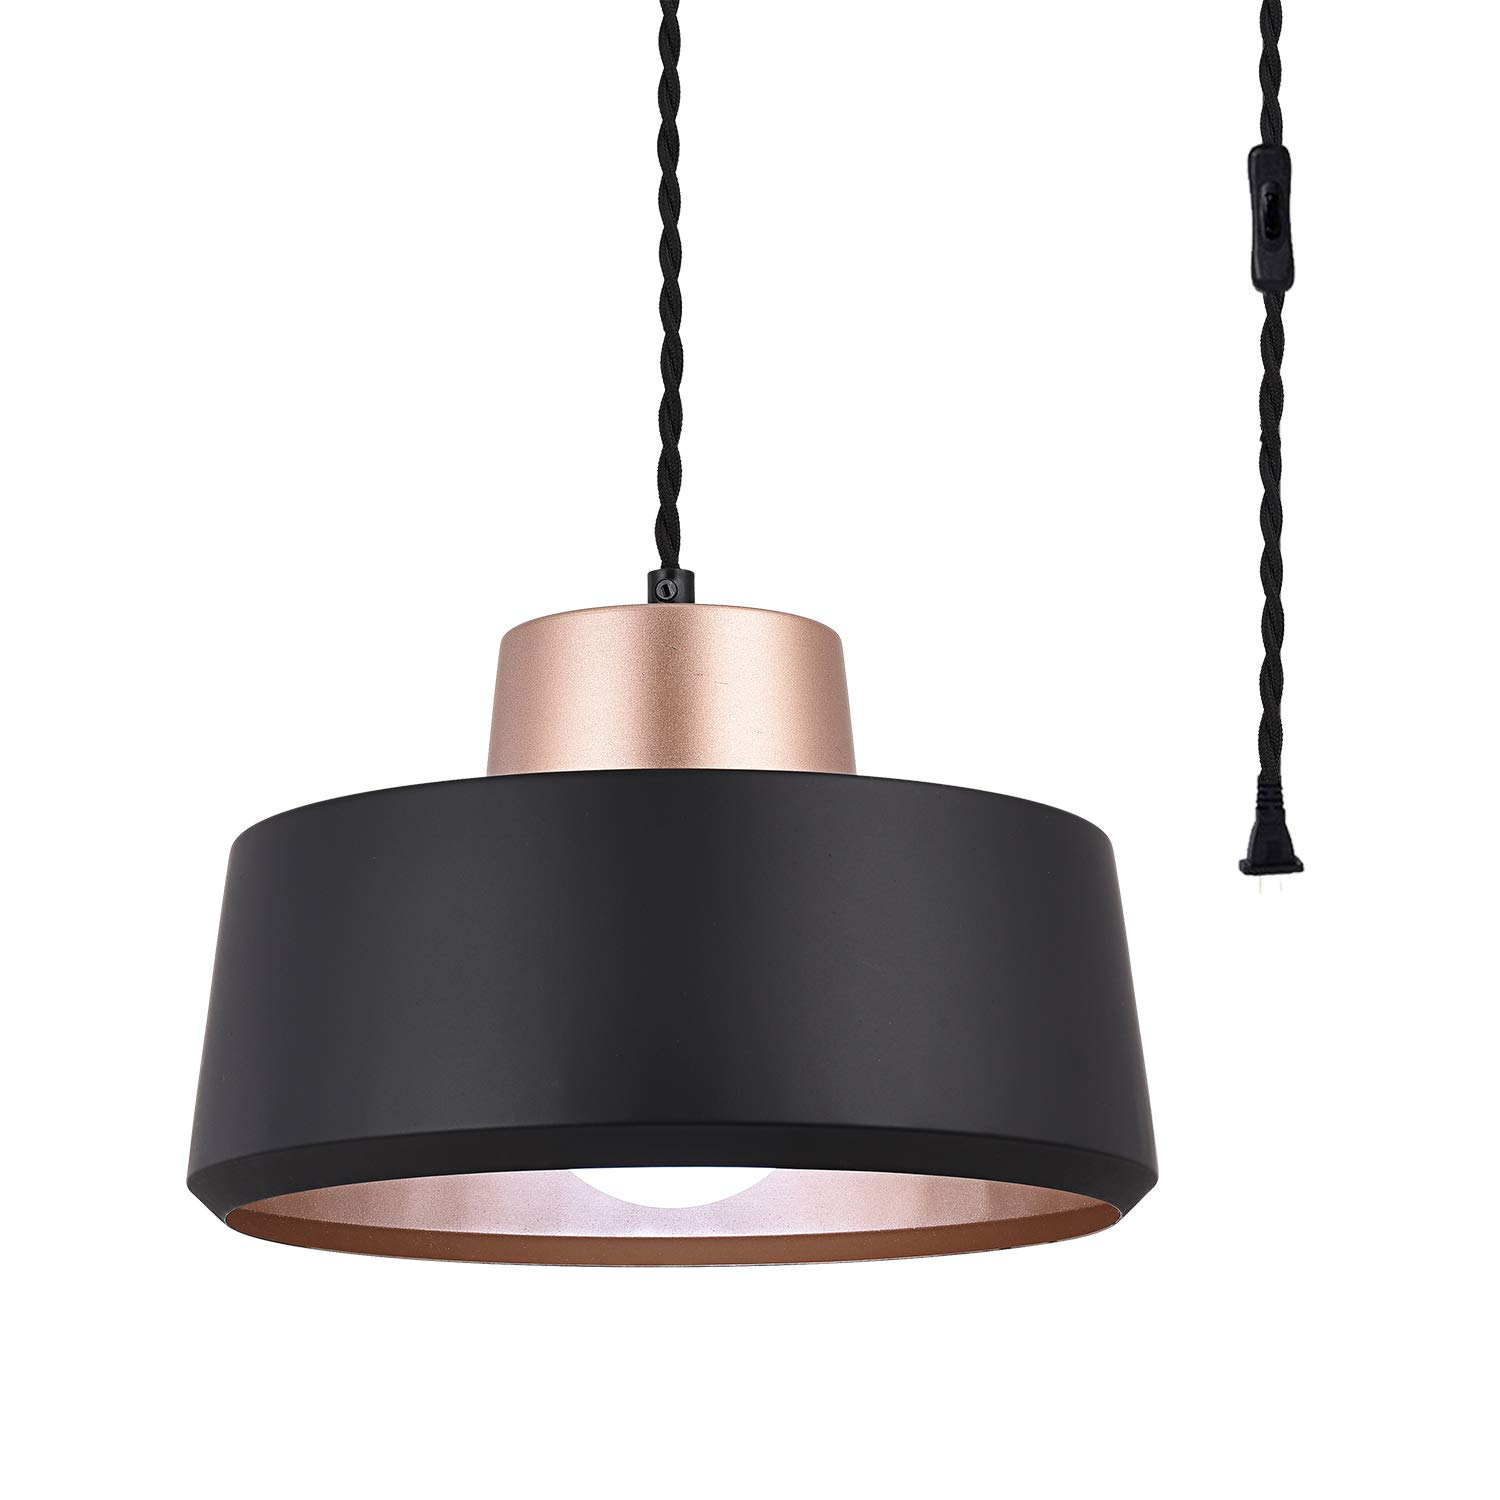 SEEBLEN Modern Plug in Pendant Lights, Black Metal Ceiling Light Fixture Hanging Lights with Plug in Cord 178 Inches in-Line On/Off Switch